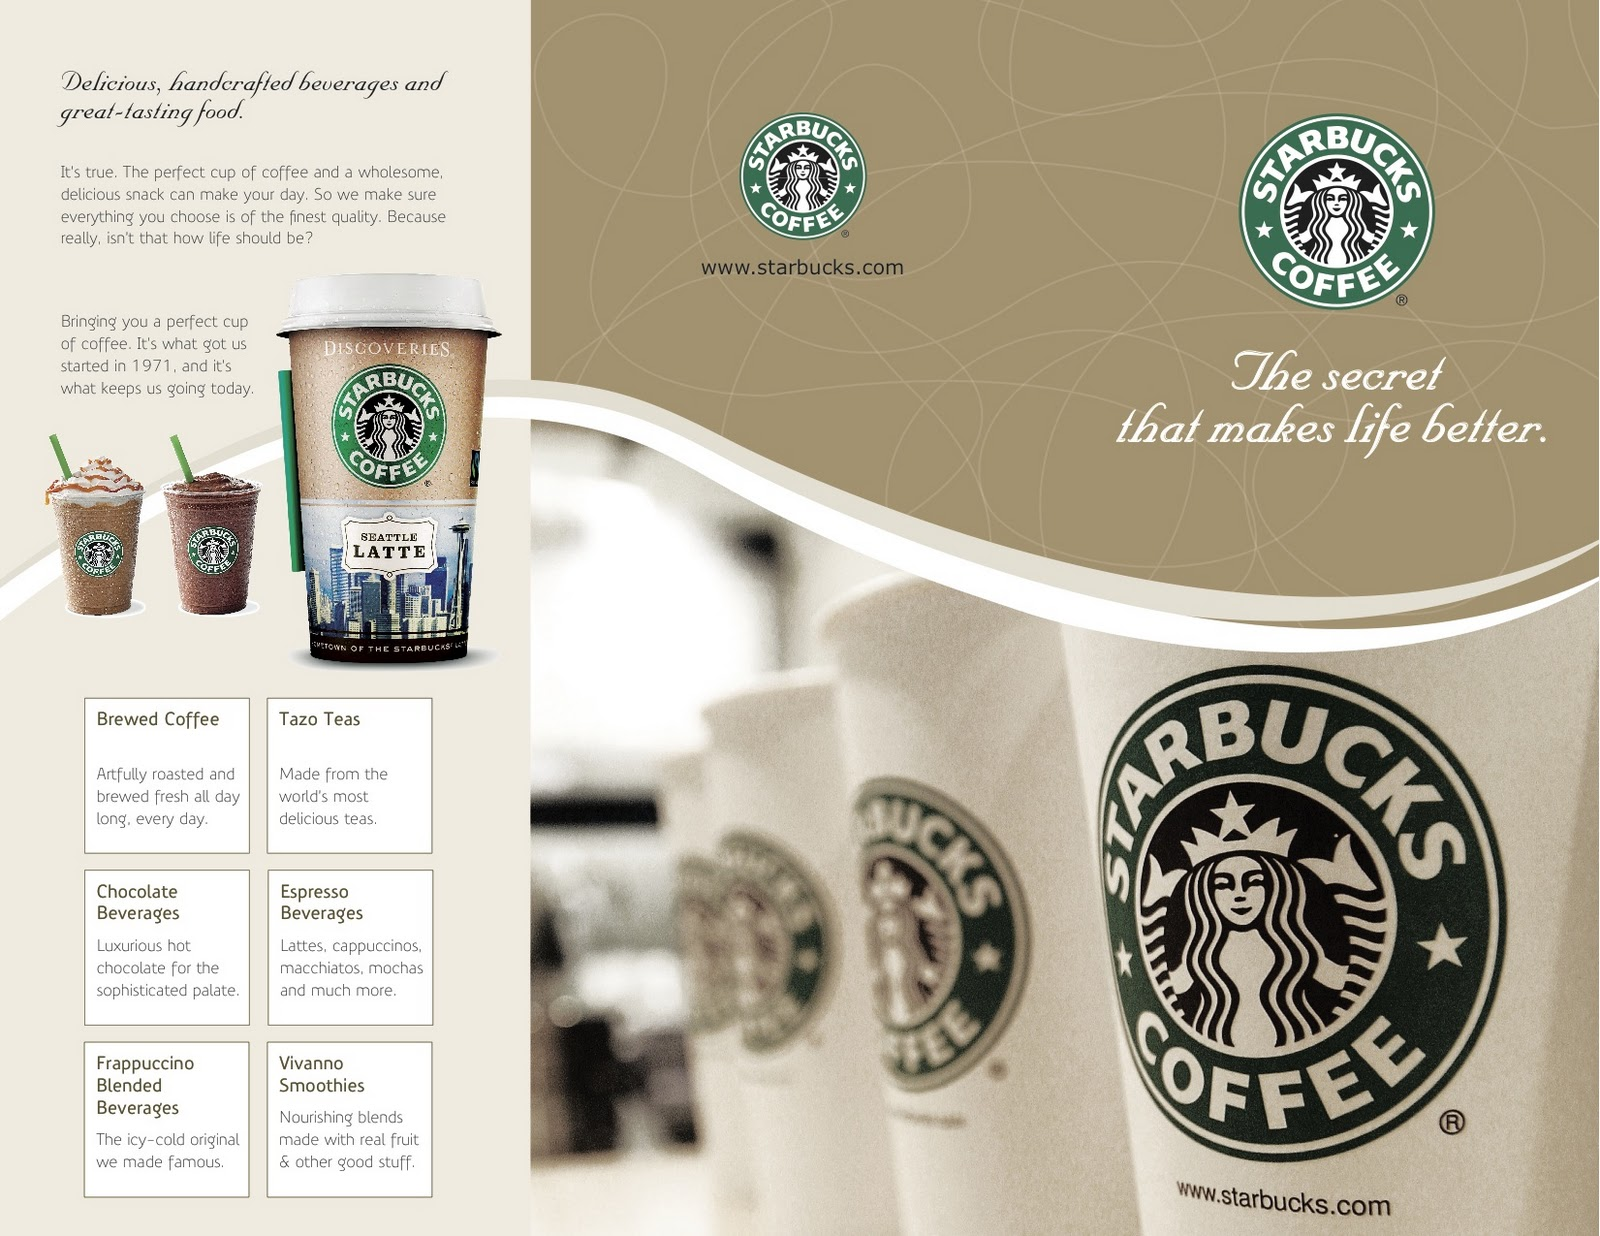 government regulations on starbucks Business ethics and compliance: standards of business conduct.